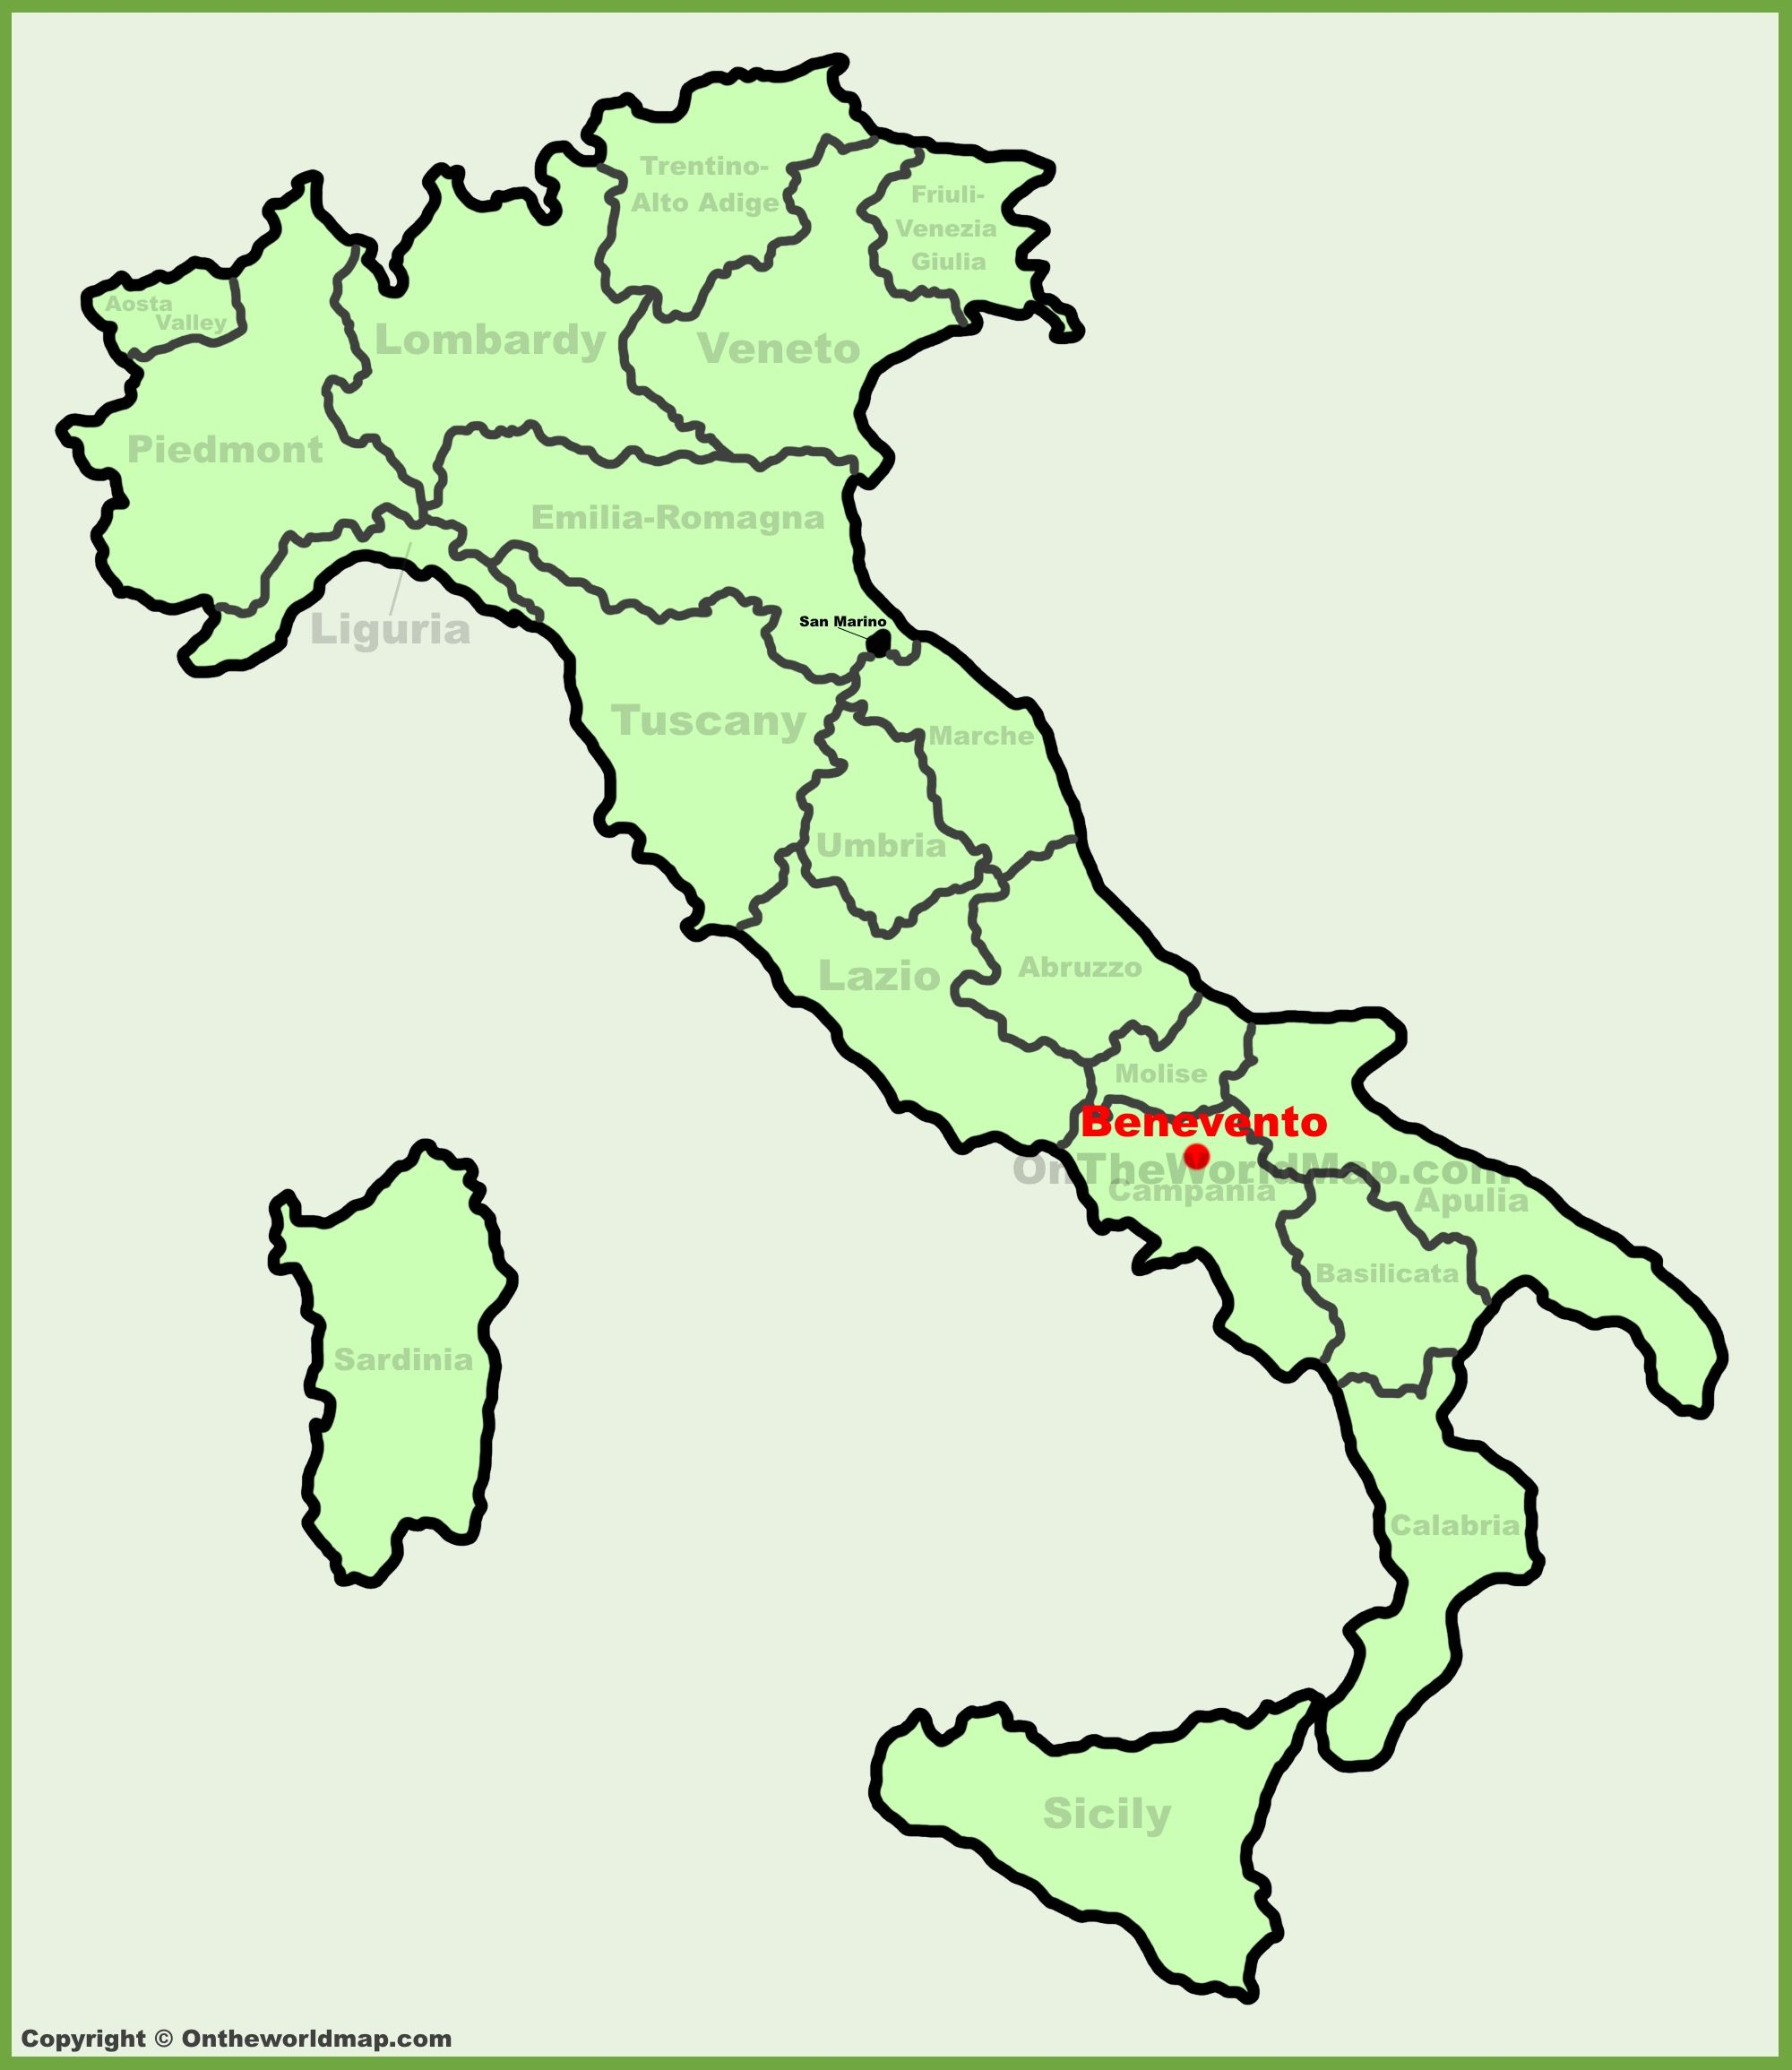 Benevento location on the Italy map | Maps | Pinterest | Italy and City